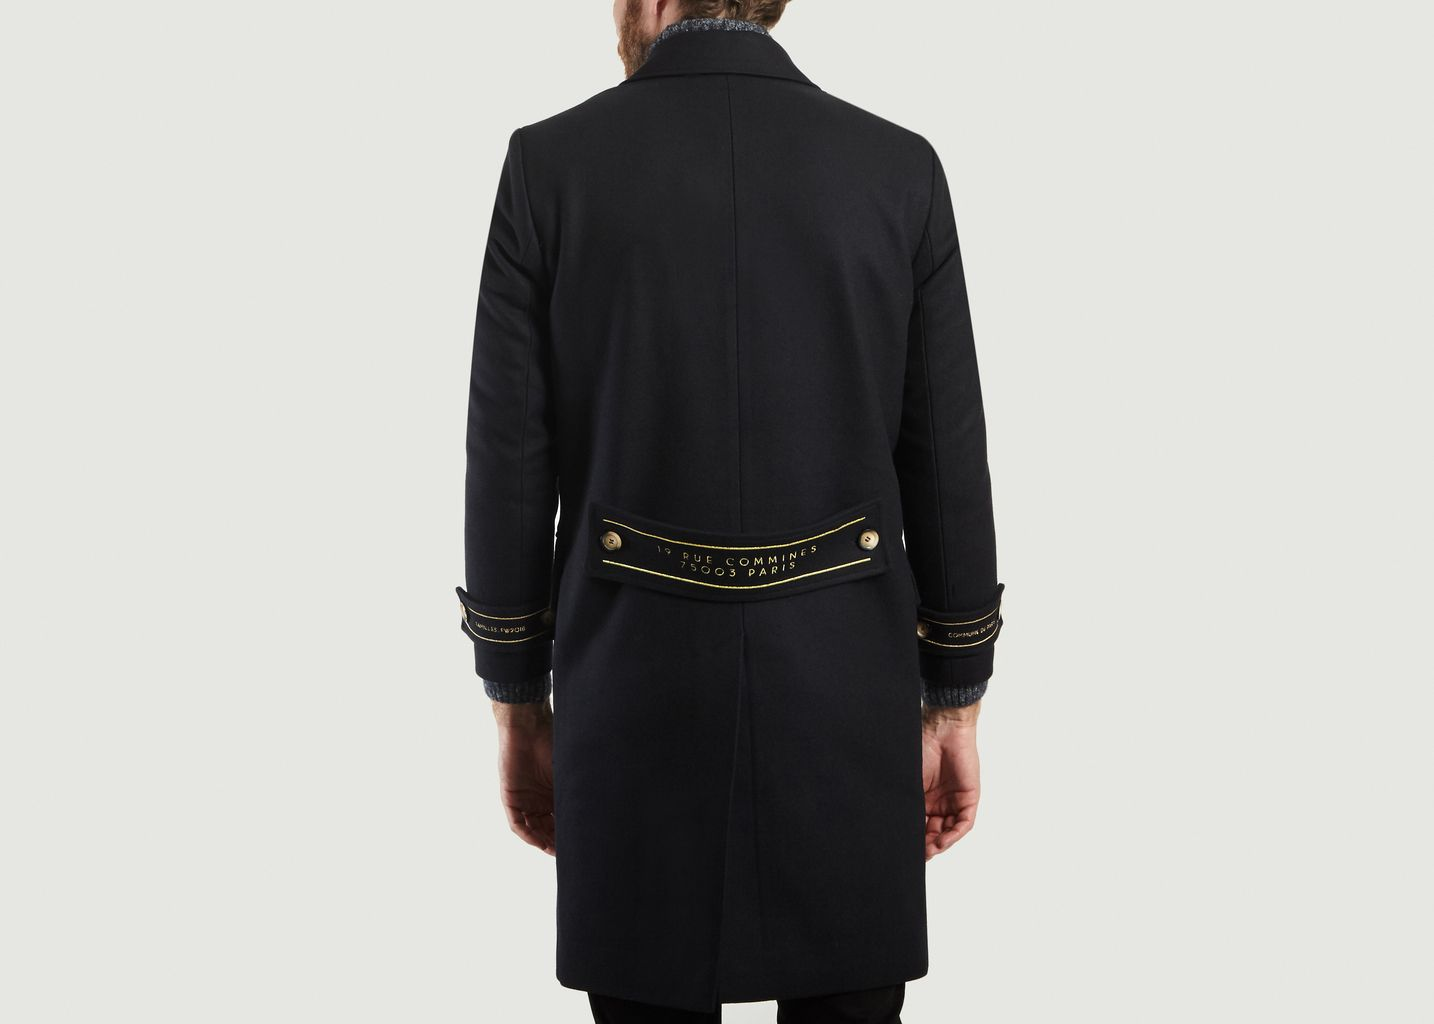 Manteau Celestin - Commune de Paris